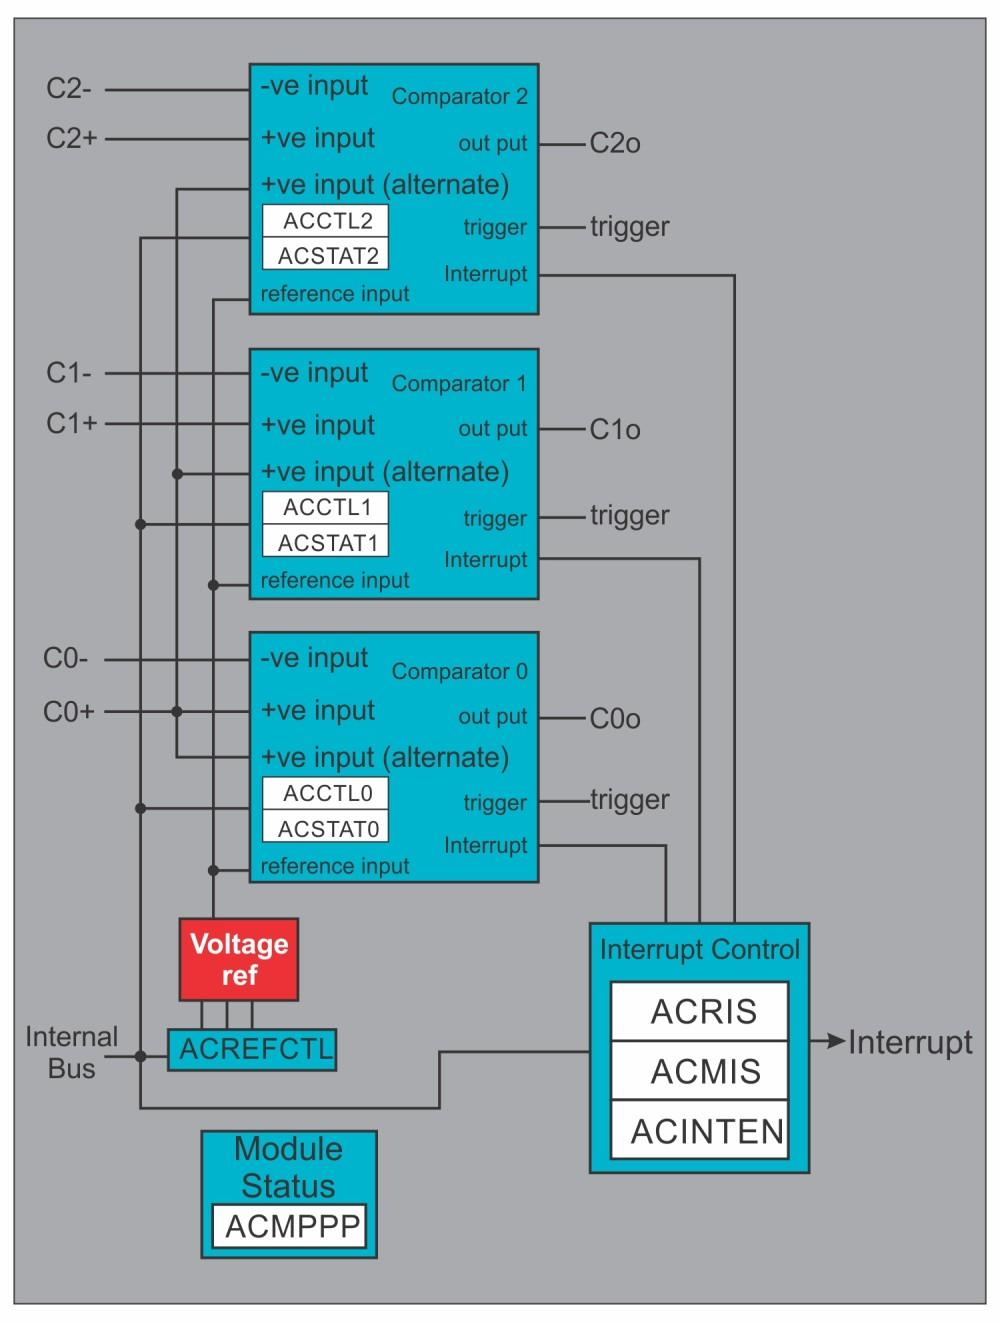 Analog Comparators 3.4.2 Analog Comparator Module Block Diagram Fig 3.10.